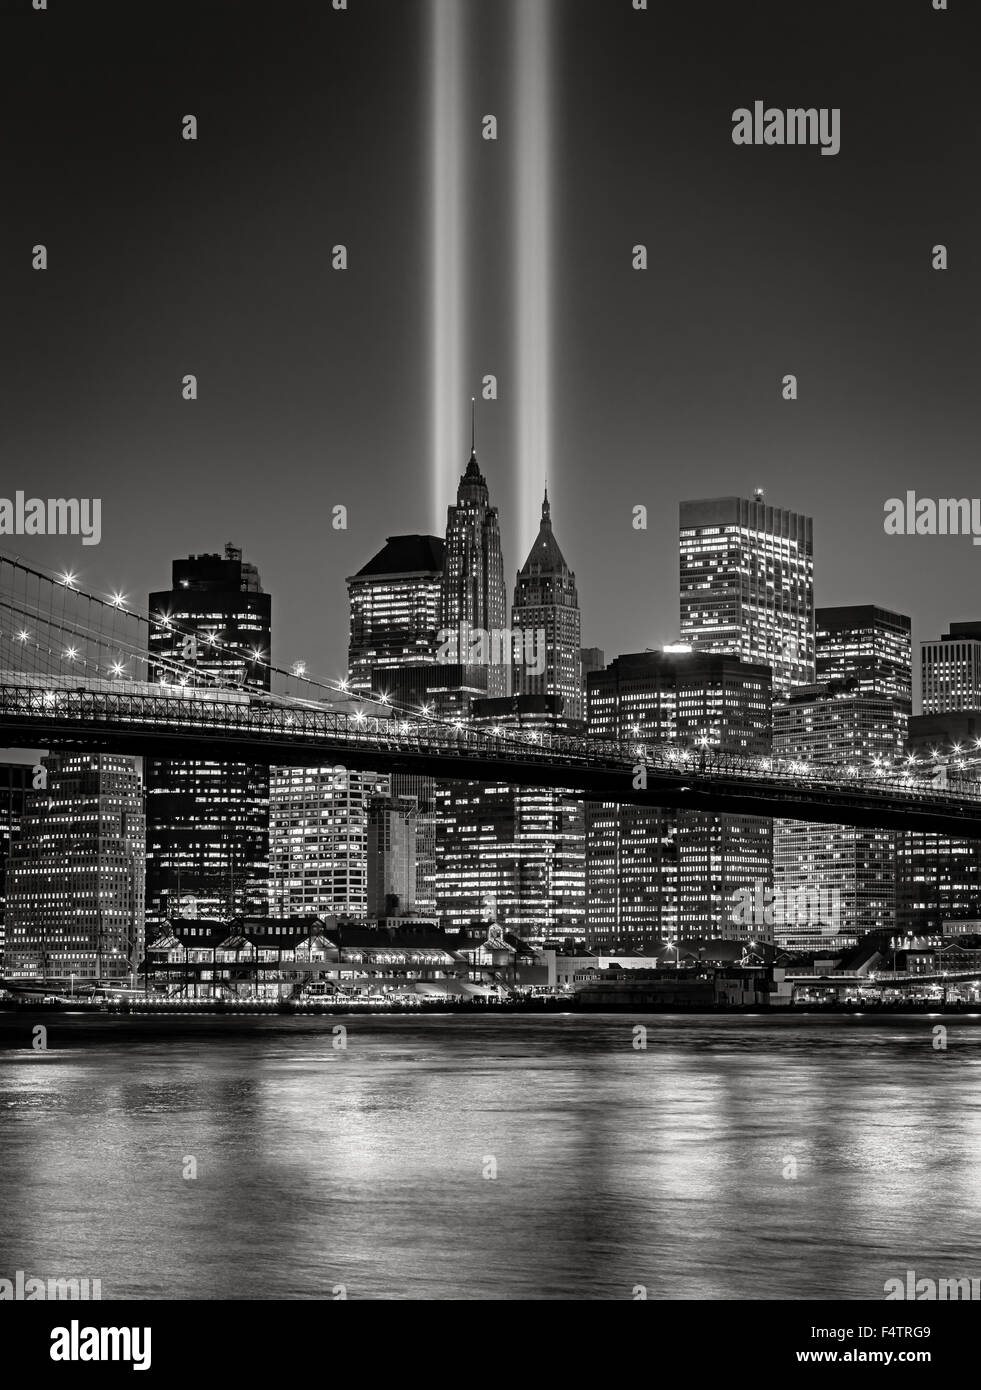 Il Tributo in luce, in Lower Manhattan illuminata con grattacieli del quartiere finanziario di New York City, Foto Stock